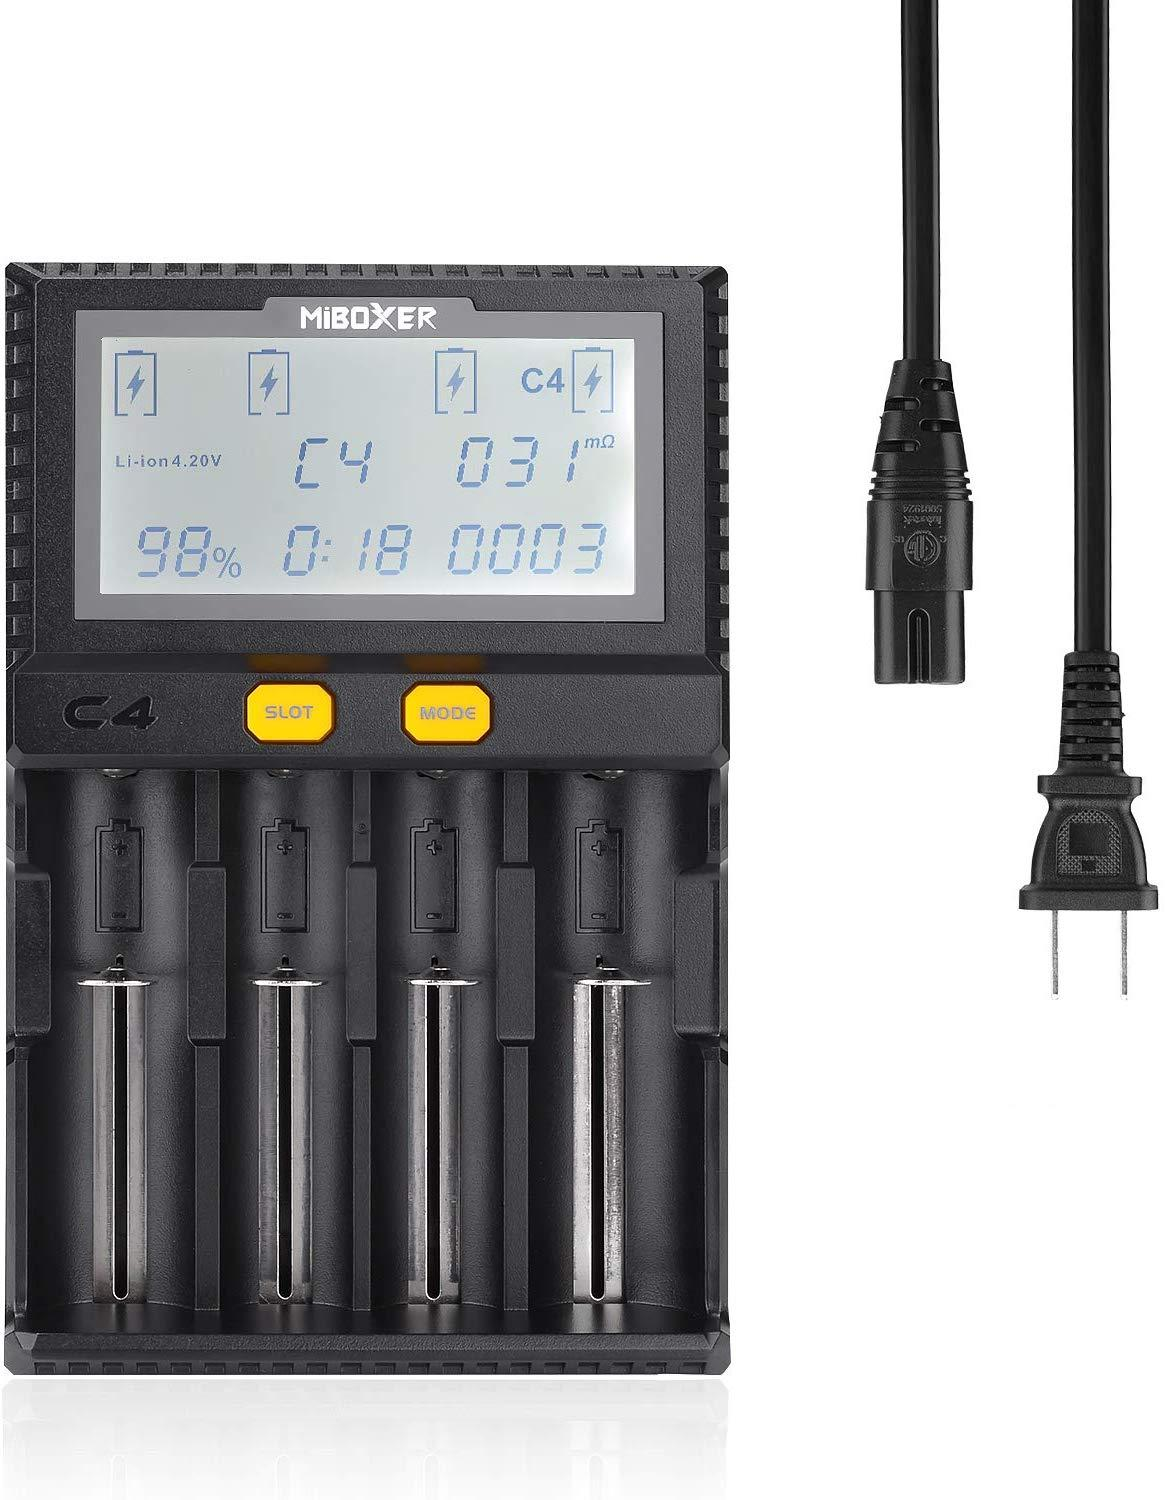 Miboxer C4  LCD Smart Battery Charger For Li-ion IMR ICR LiFePO4 18650 14500 26650 21700 AAA Batteries 100-800mAh 1.5A Discharge